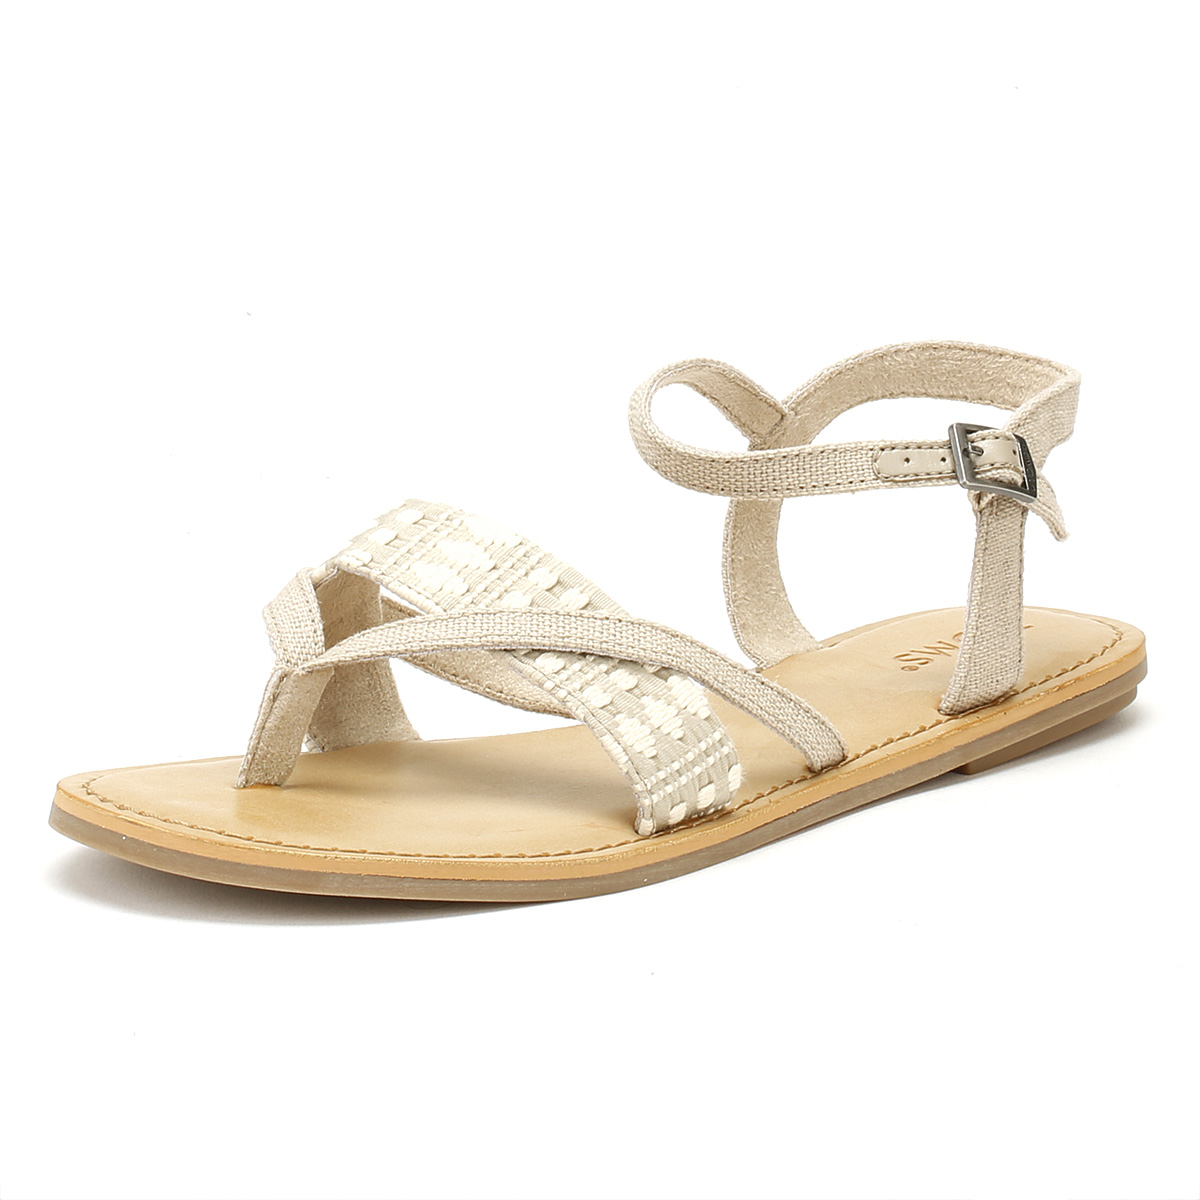 3989e7fabb7 TOMS Womens Oxford Tan Heritage Lexie Sandals Ladies Summer Shoes